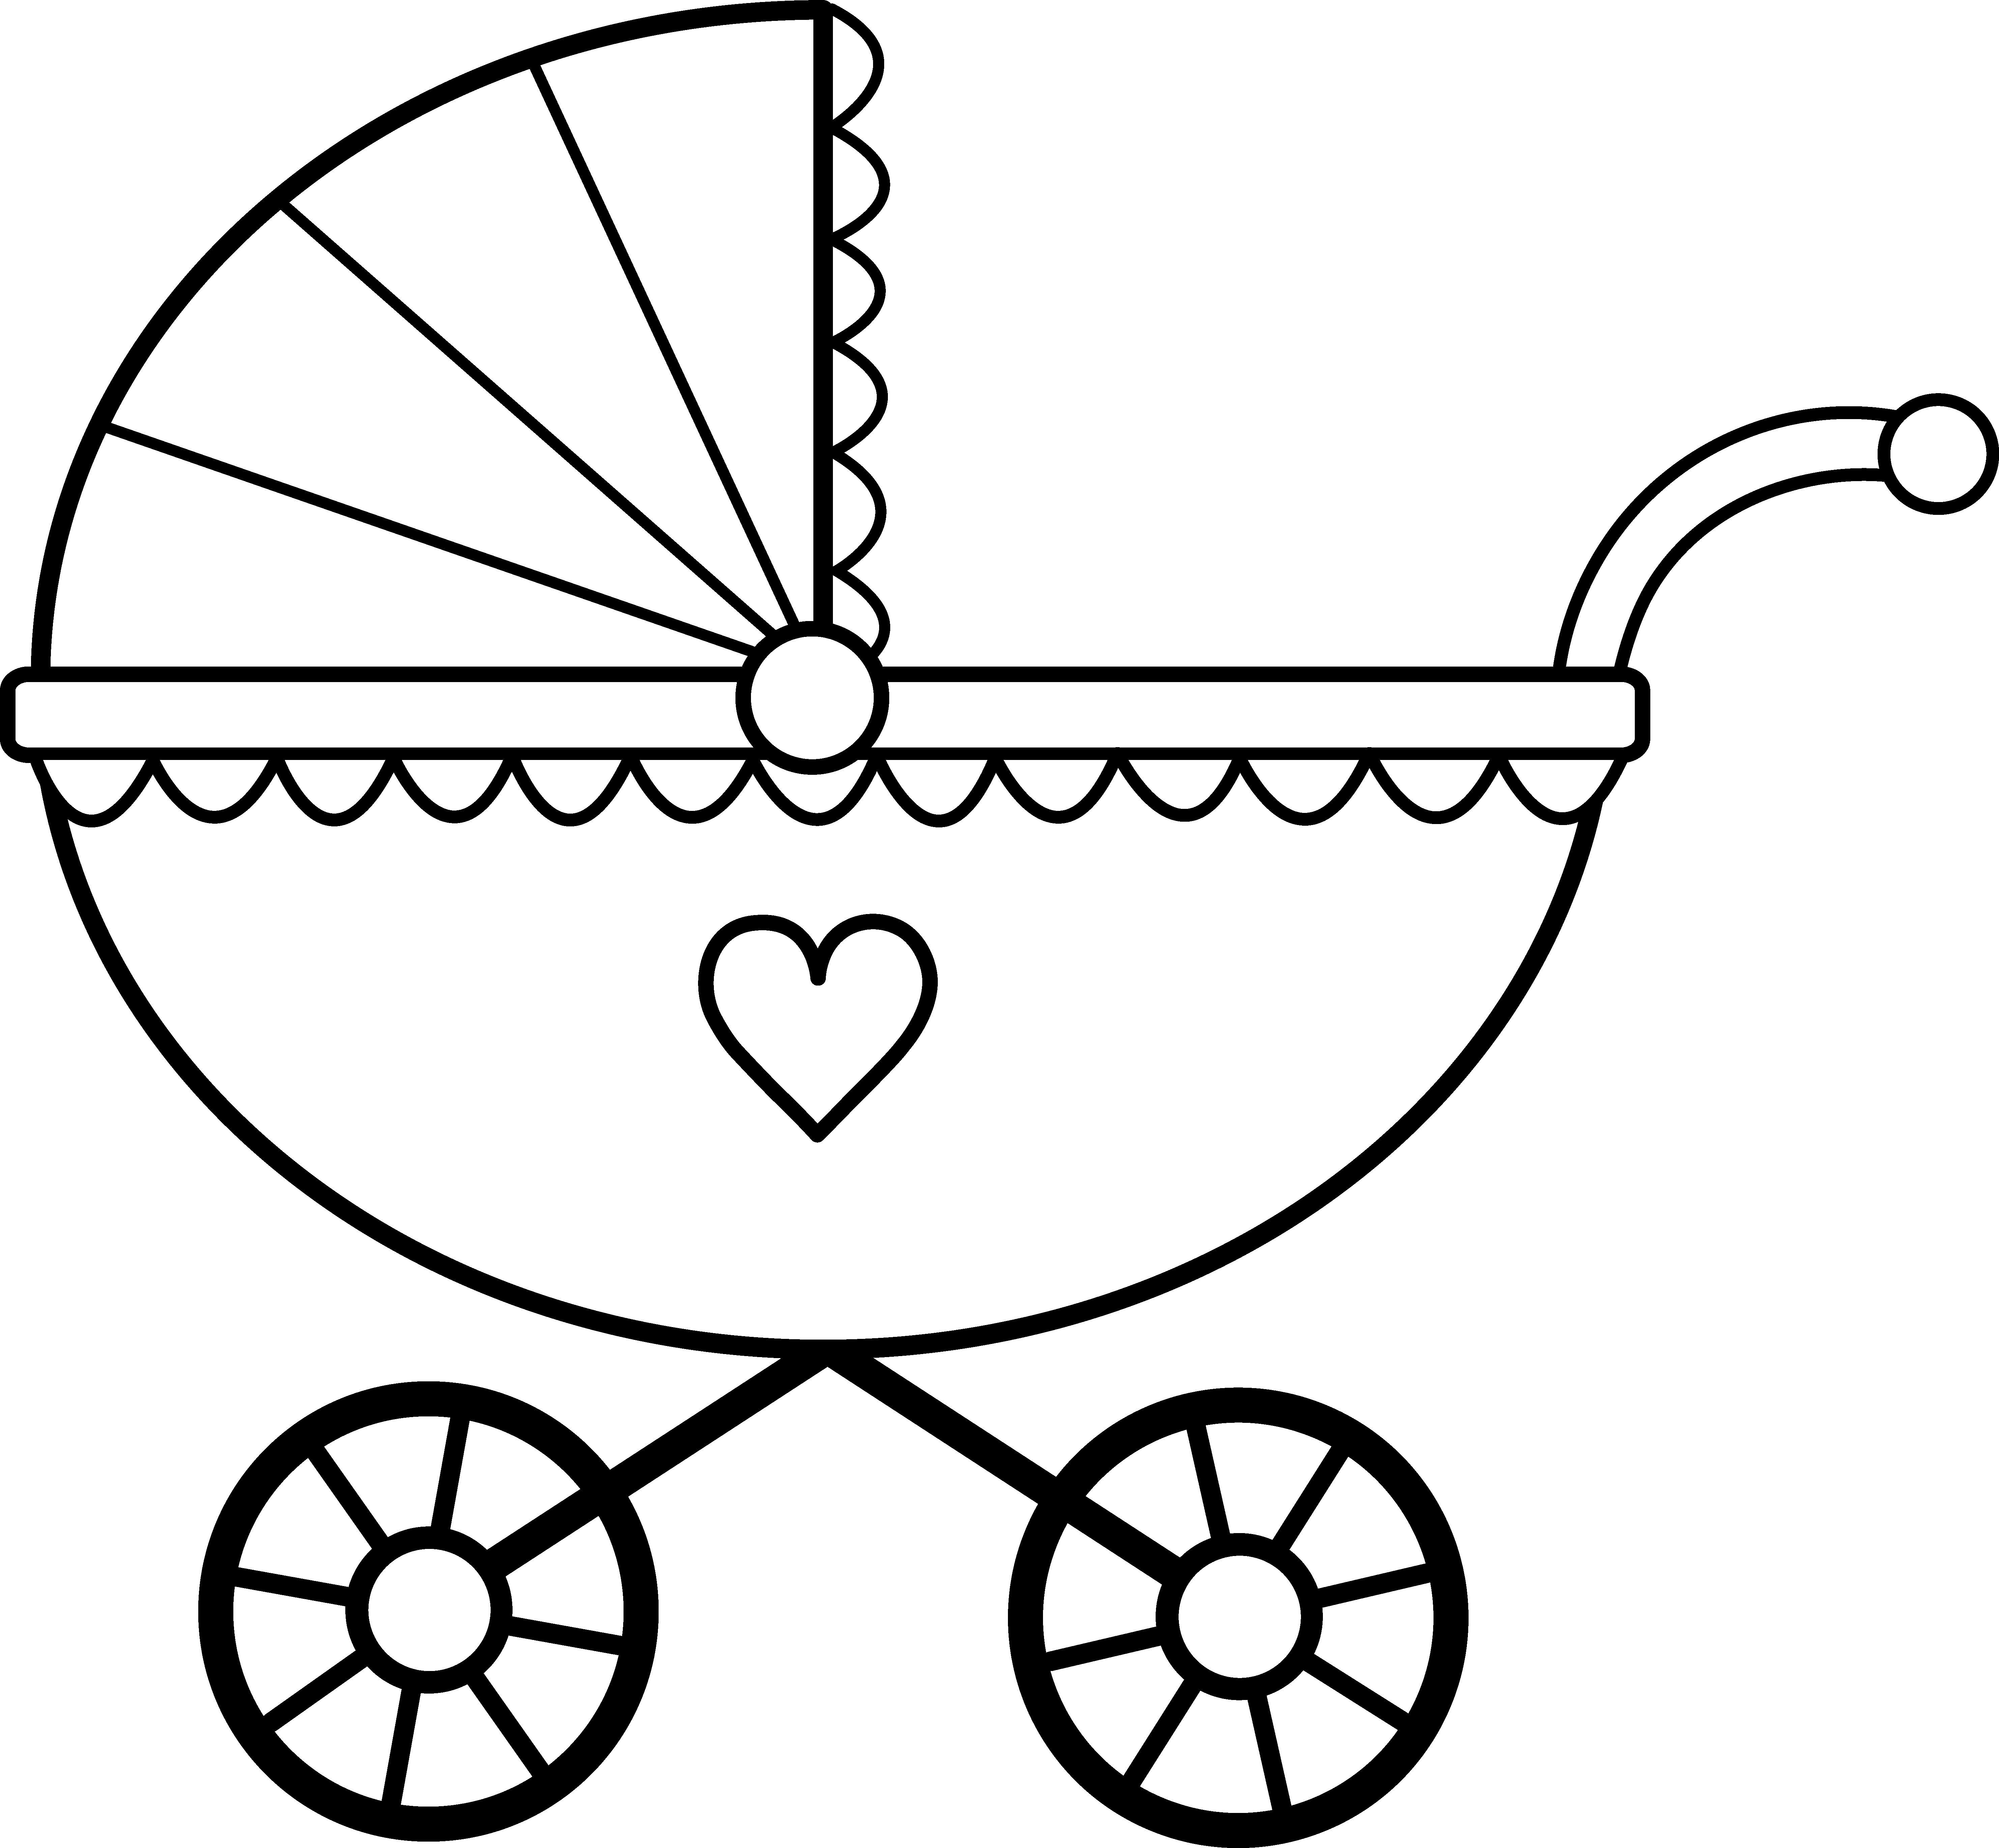 Rattle clipart drawing baby. Collection of high